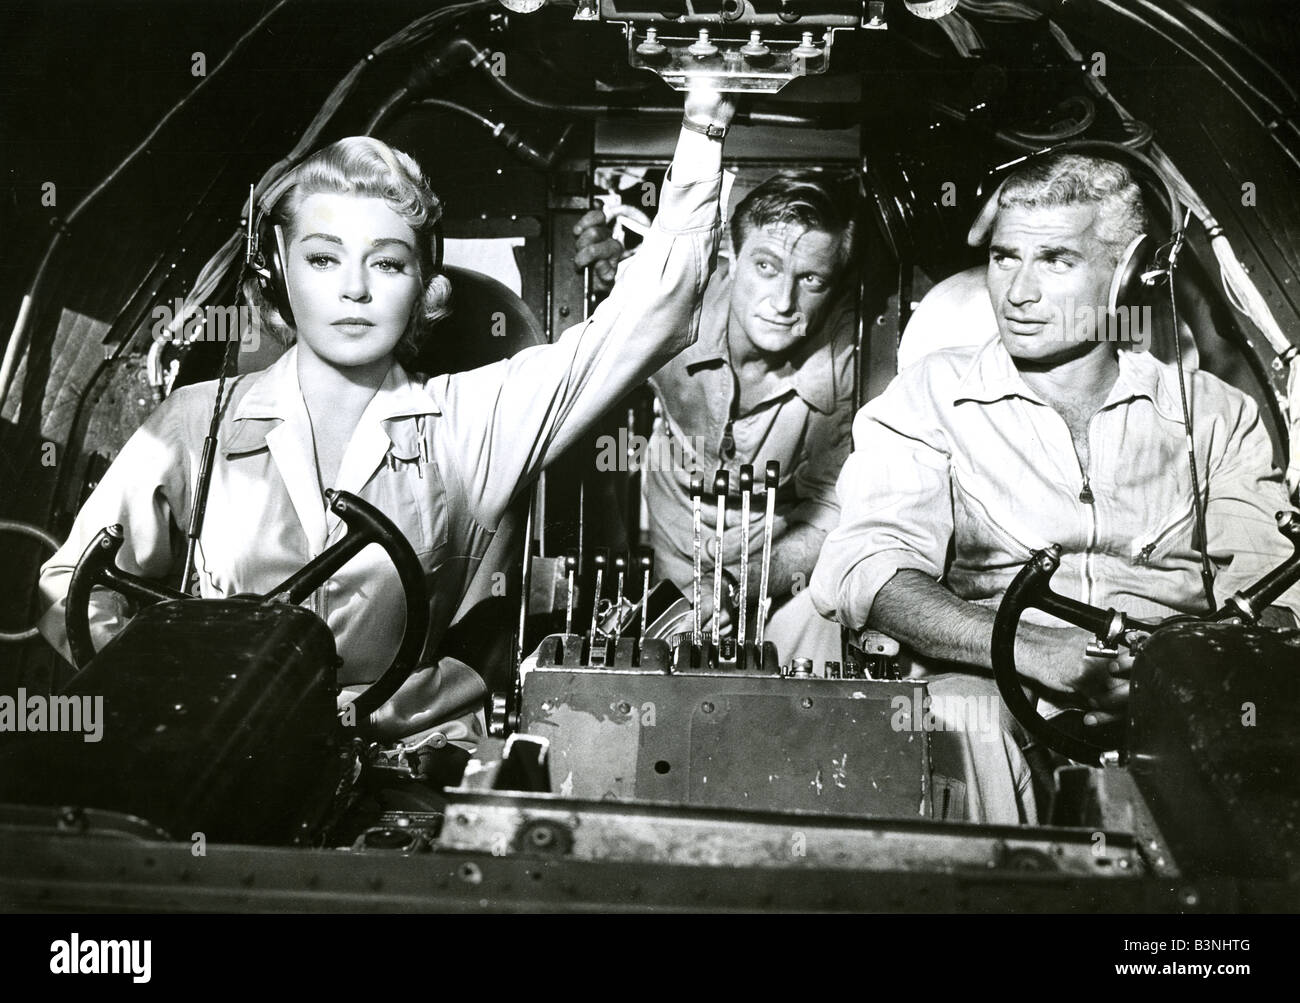 THE LADY TAKES A FLYER  1958 Universal-International film with Lana Turner and Jeff Chandler - Stock Image